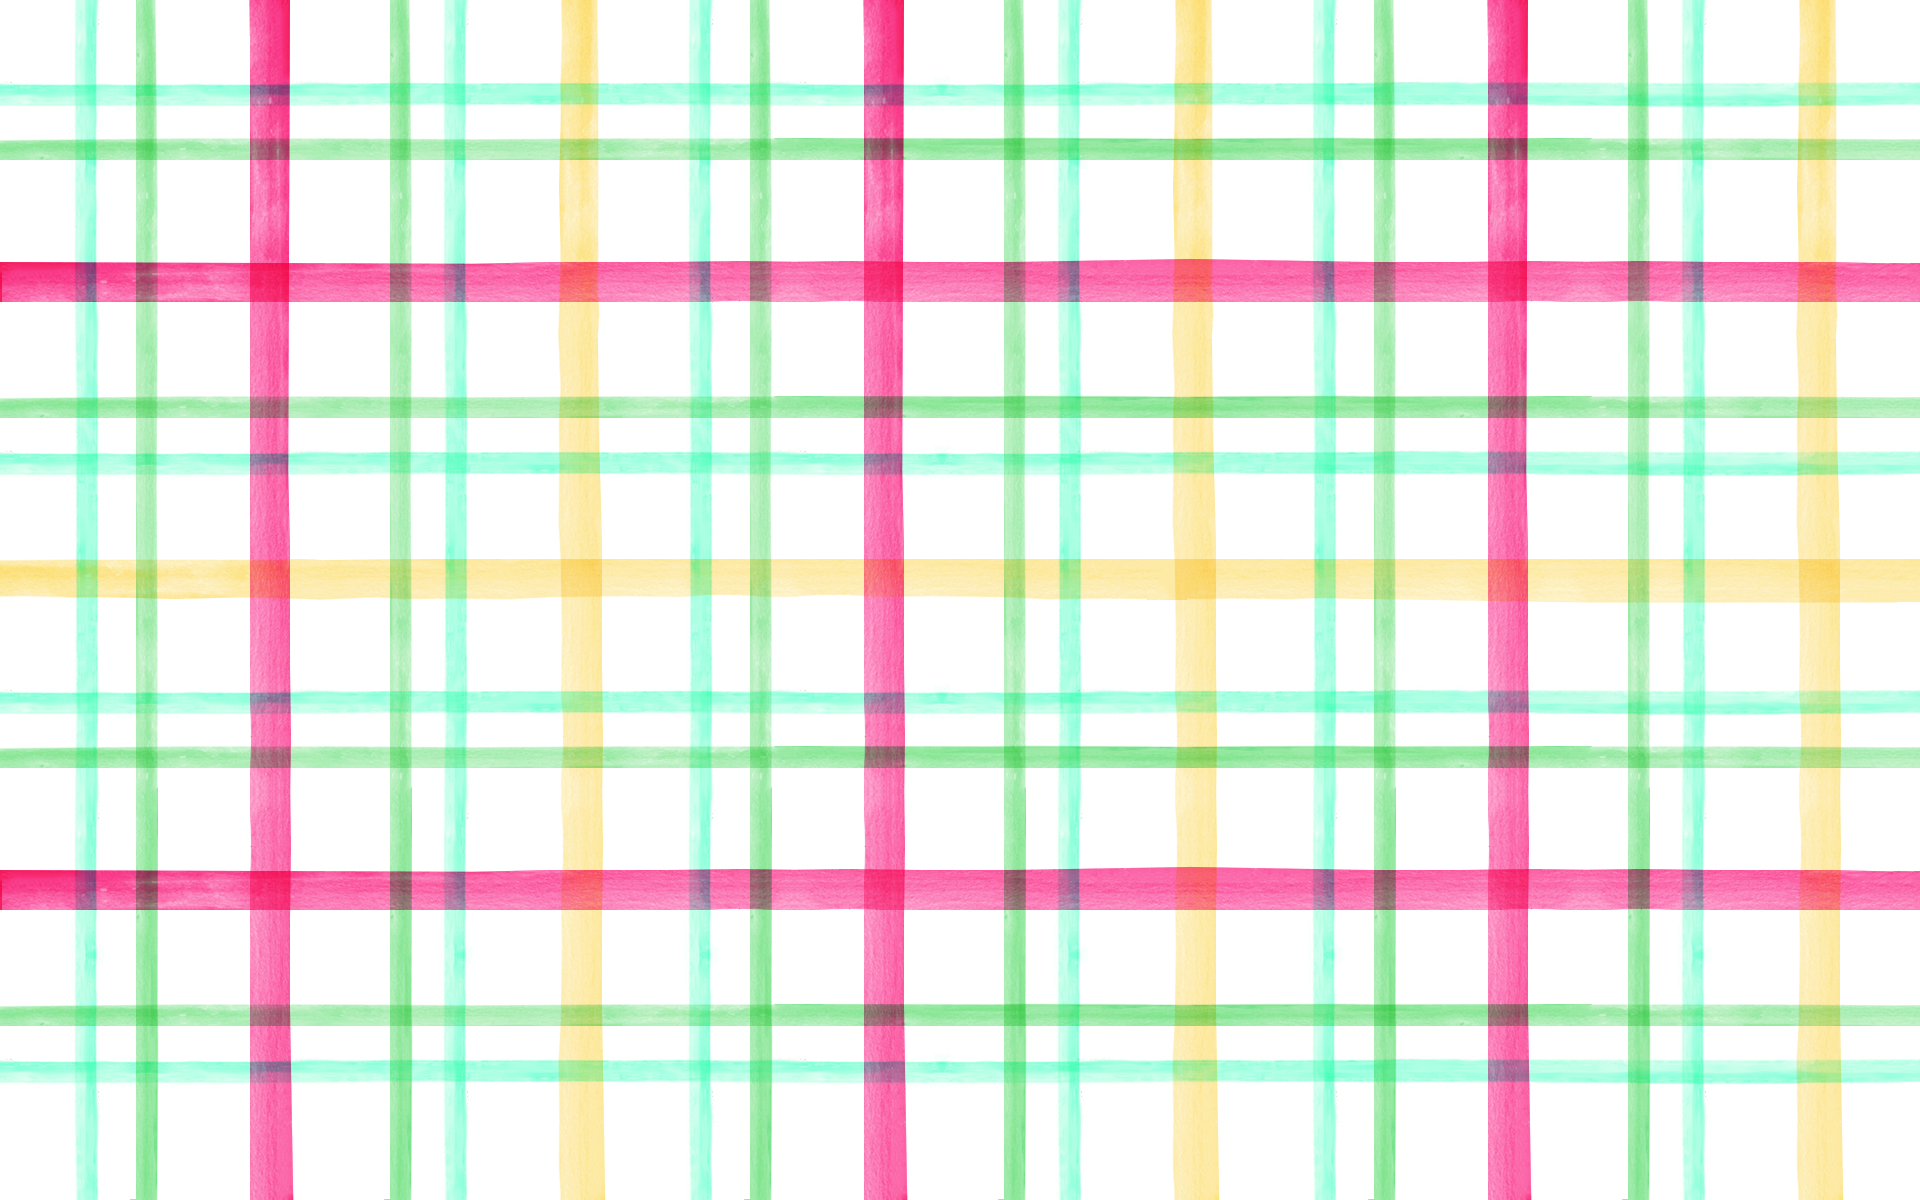 The Patternbase Easter Plaid